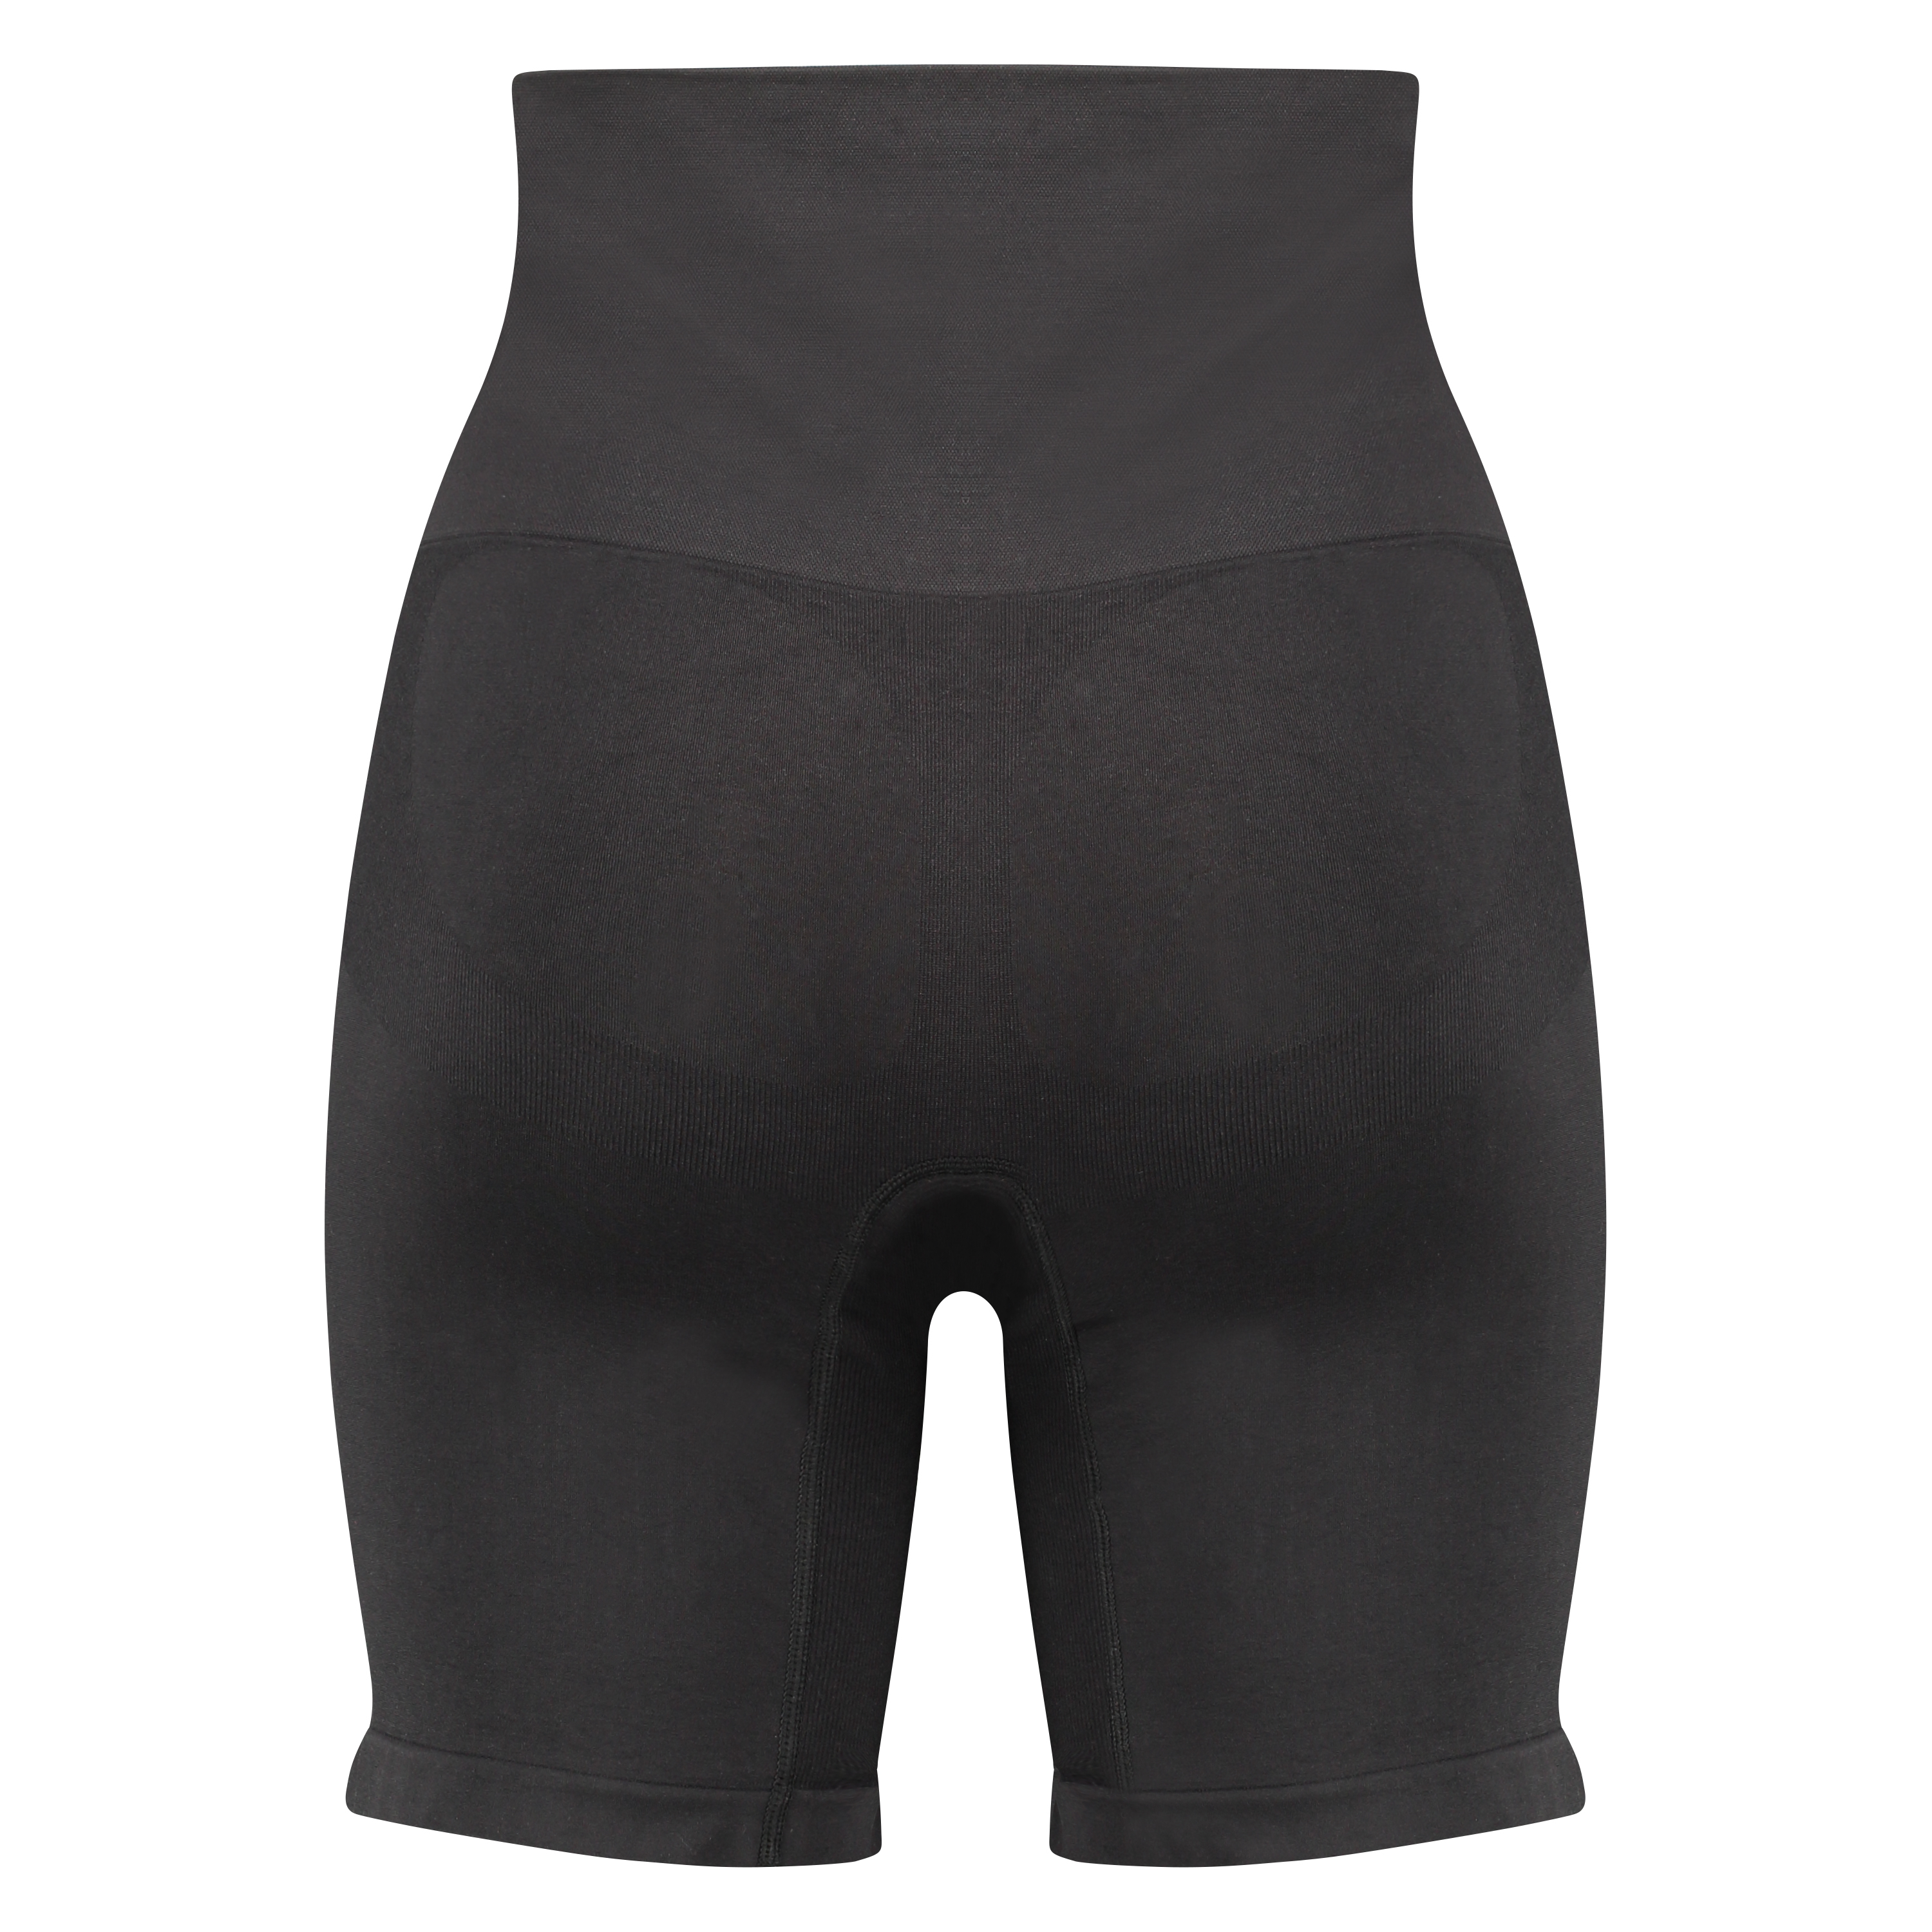 Firming high trousers - Level 2, Black, main